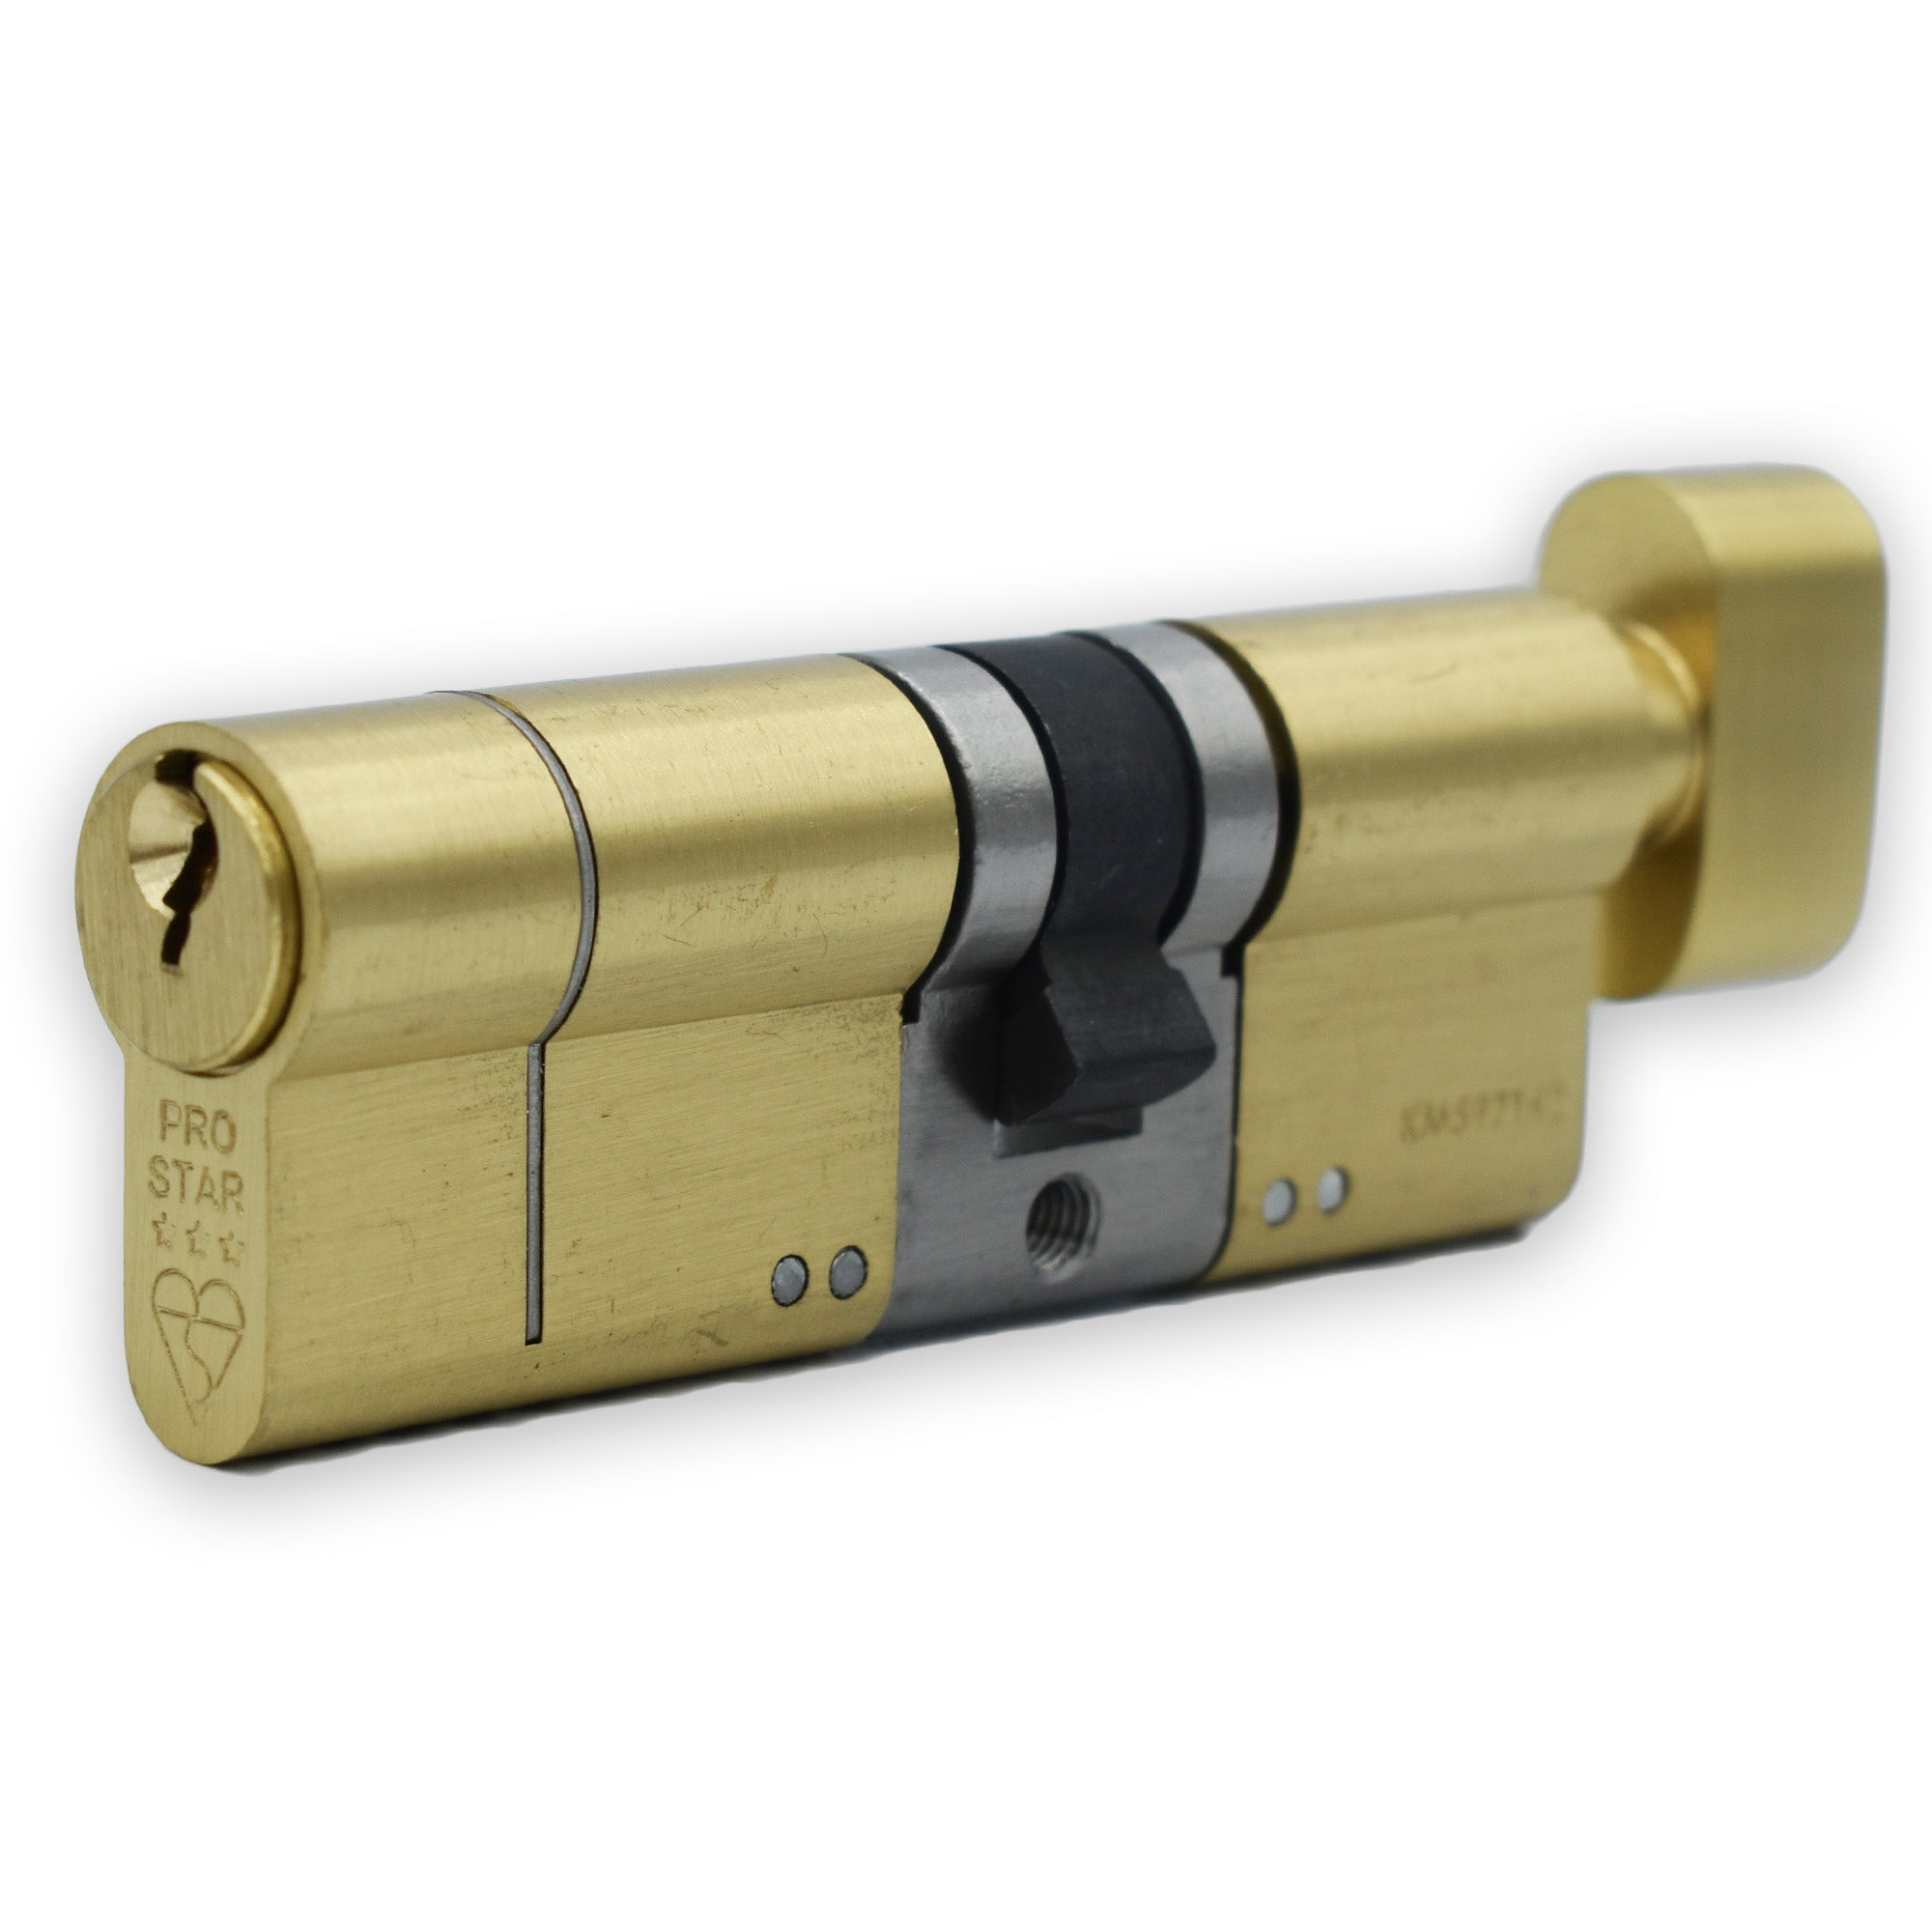 Pro Star High Security 3 Star Euro Cylinder ( 35 T / 50 ) -  - Pro Star - UPVCSTORE